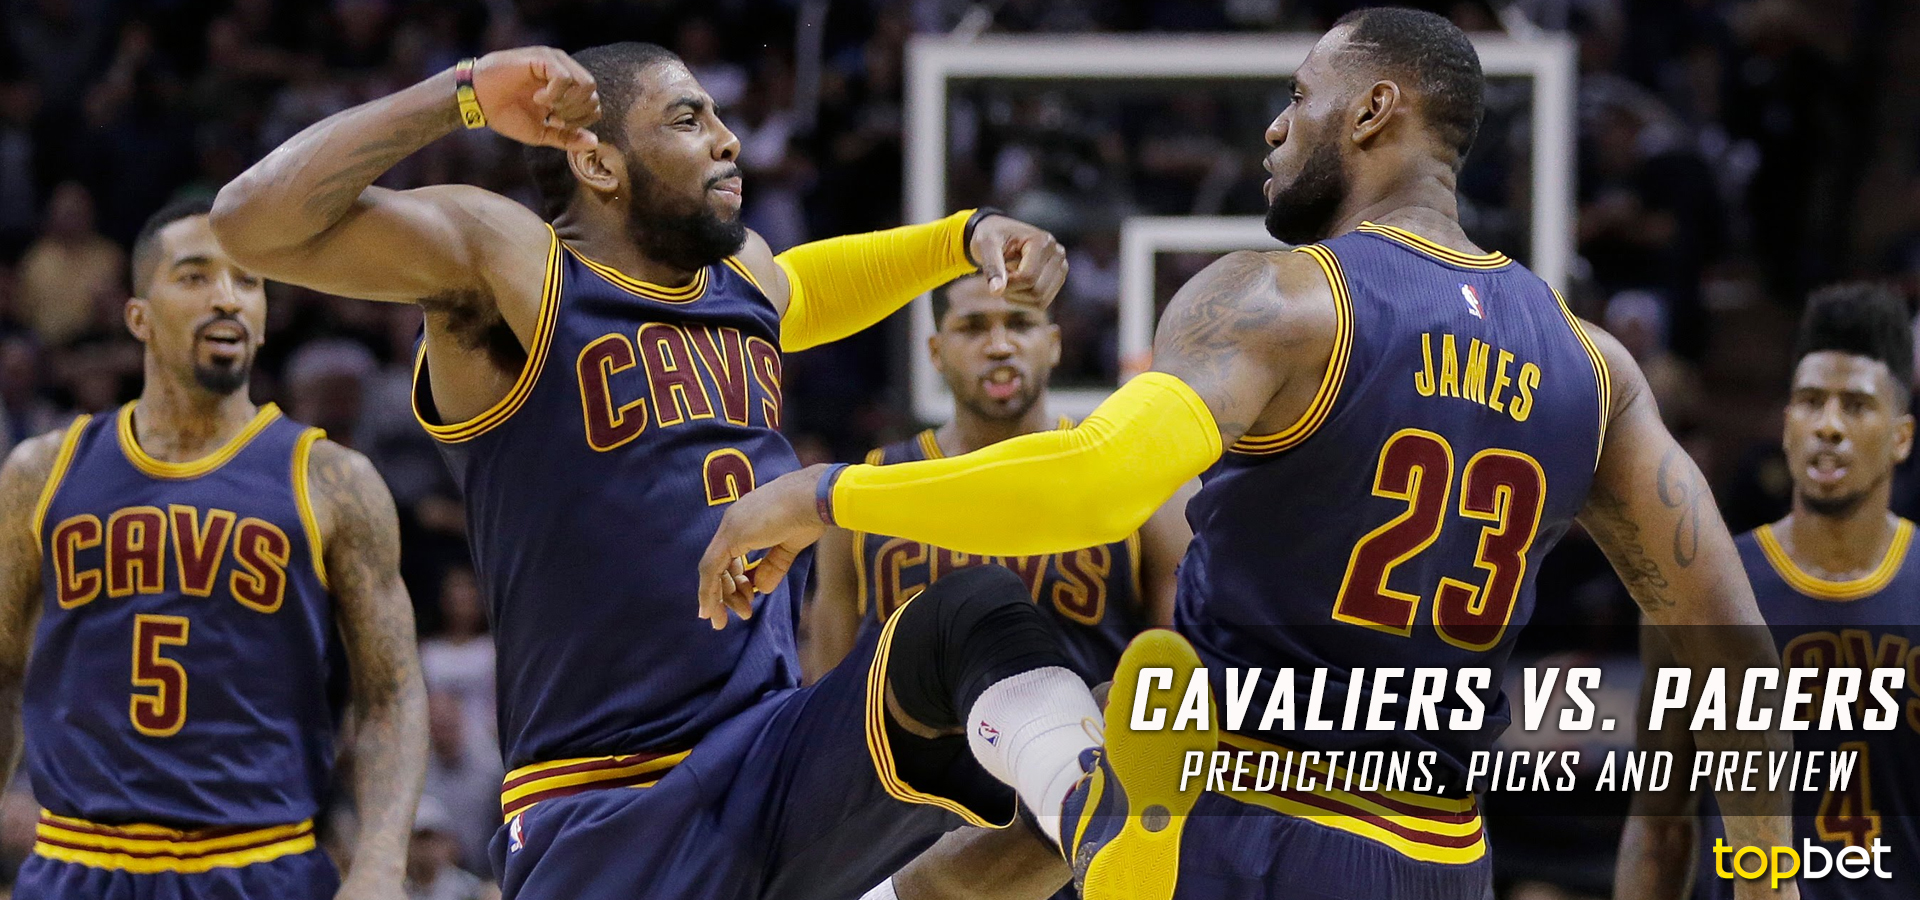 pacers vs cavaliers - photo #17